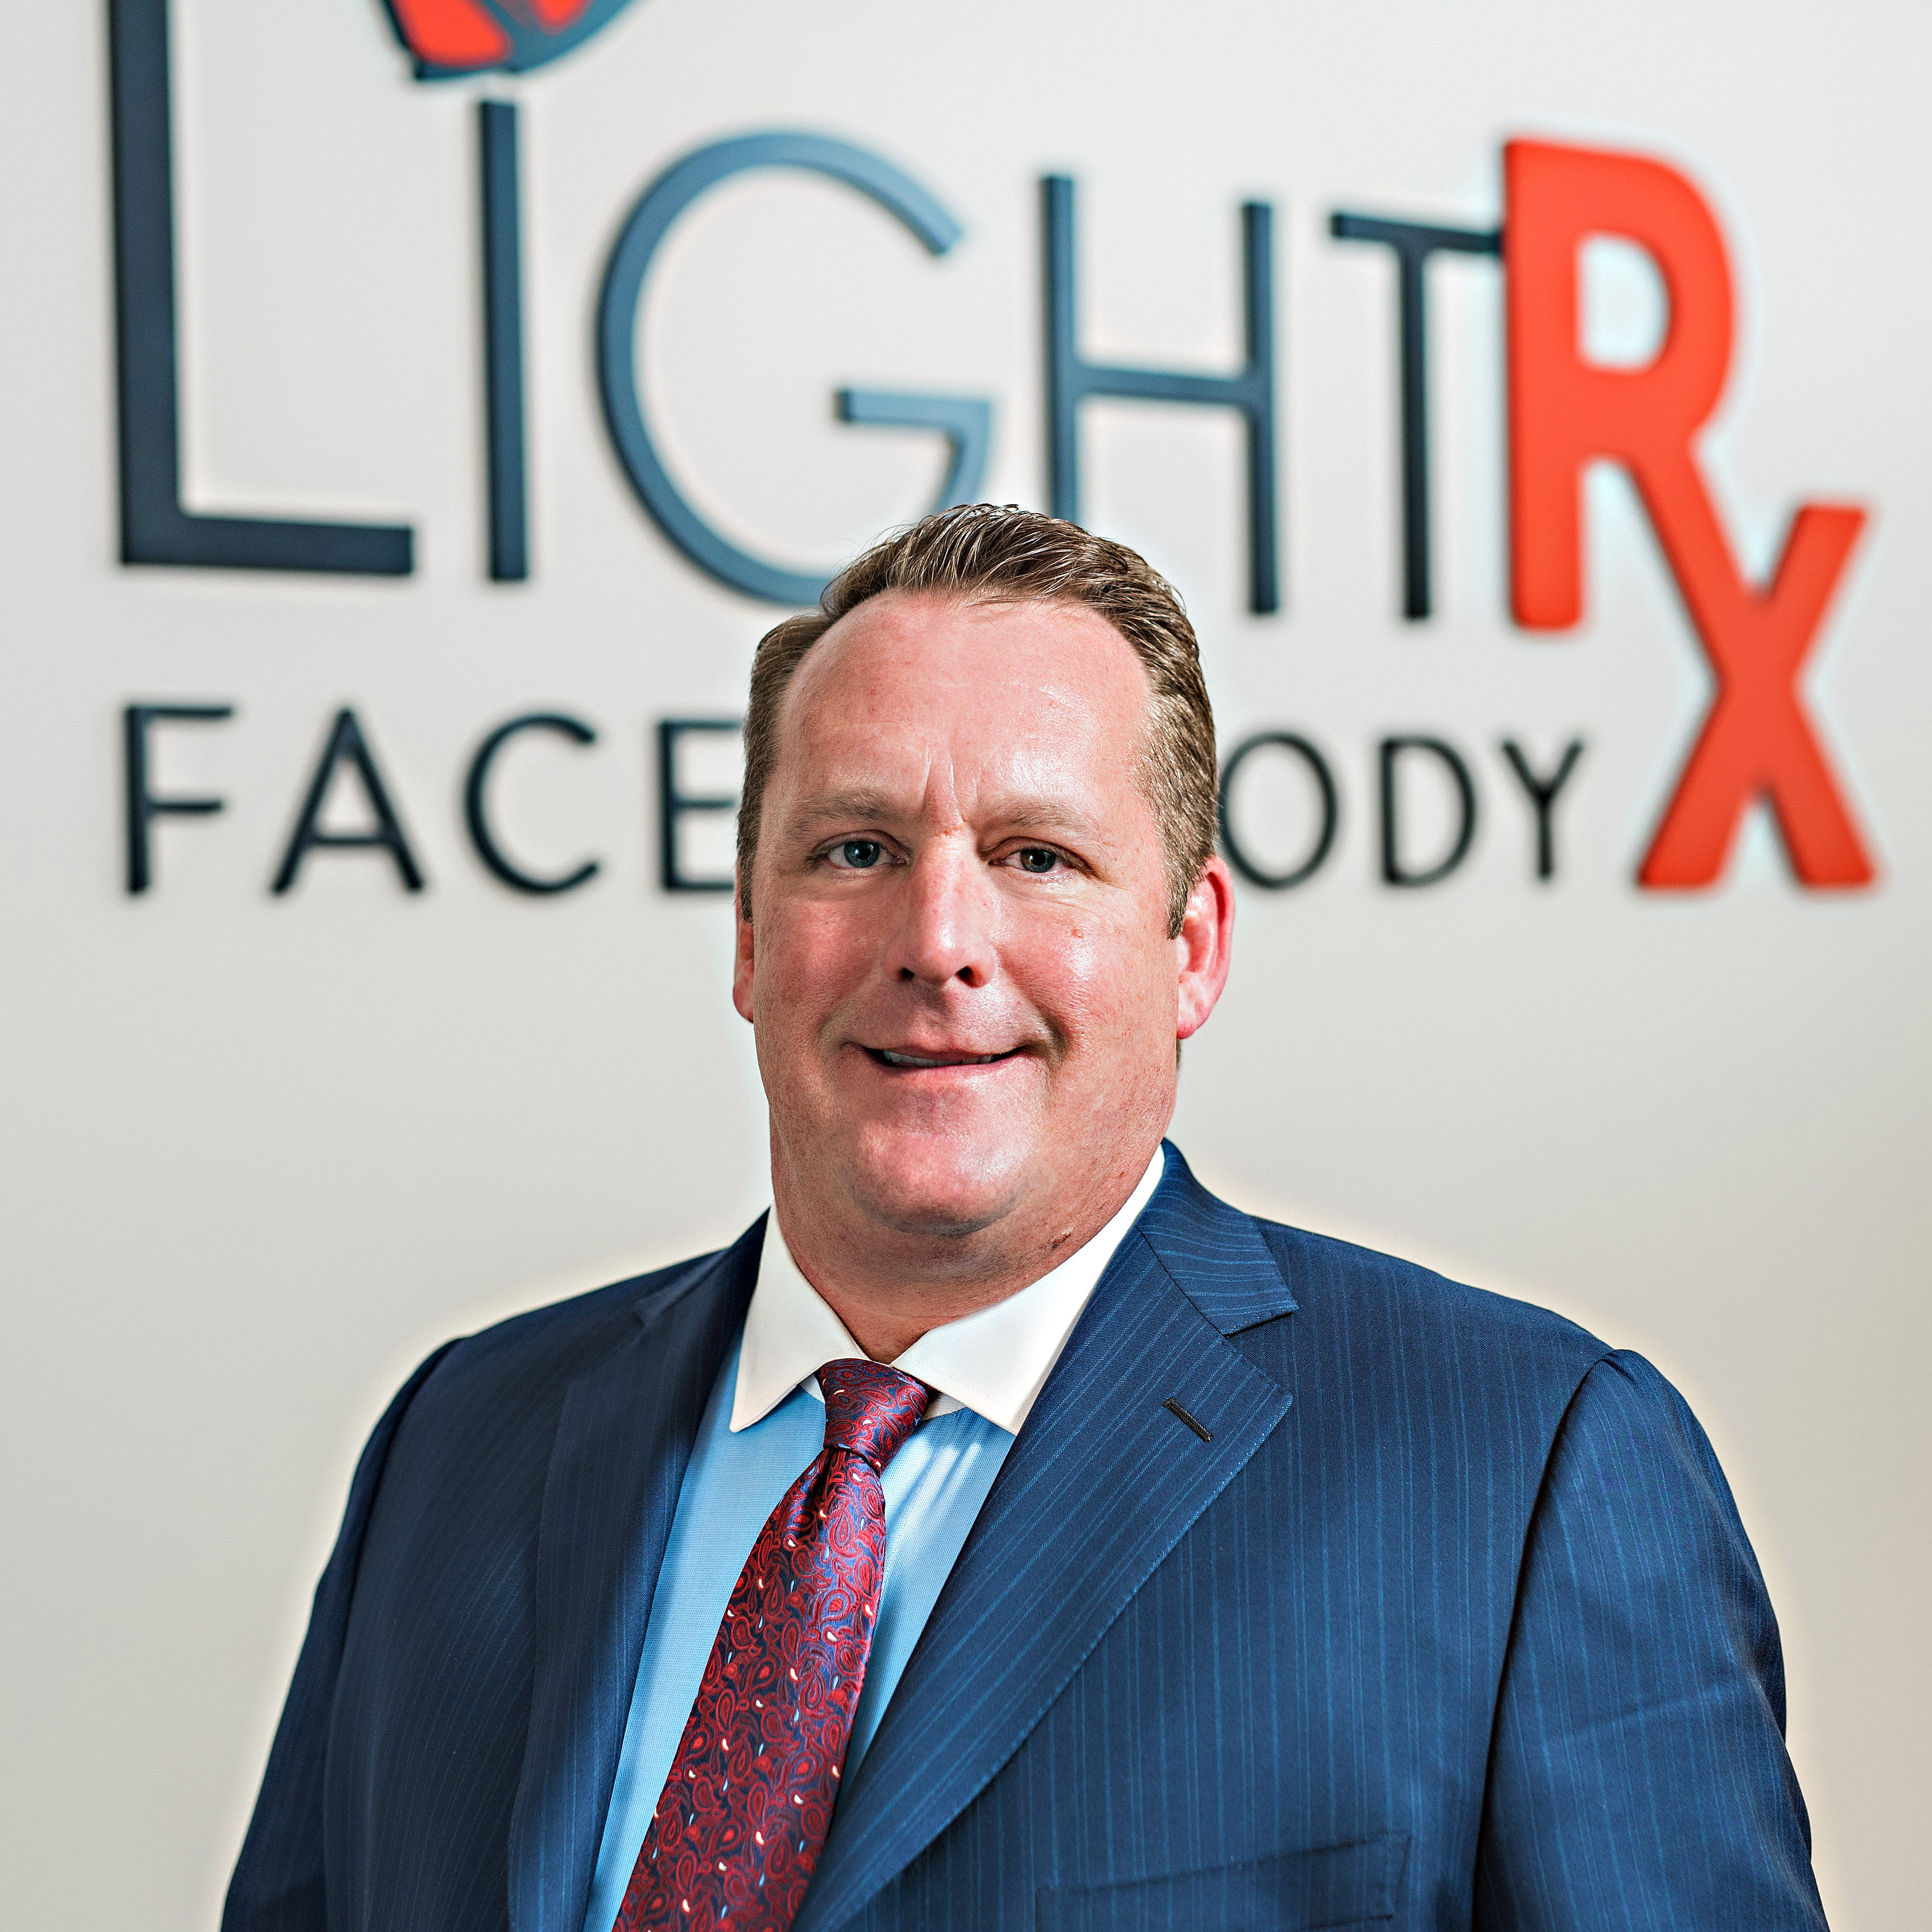 Troubled LightRX laser spas could exit bankruptcy with new ownership